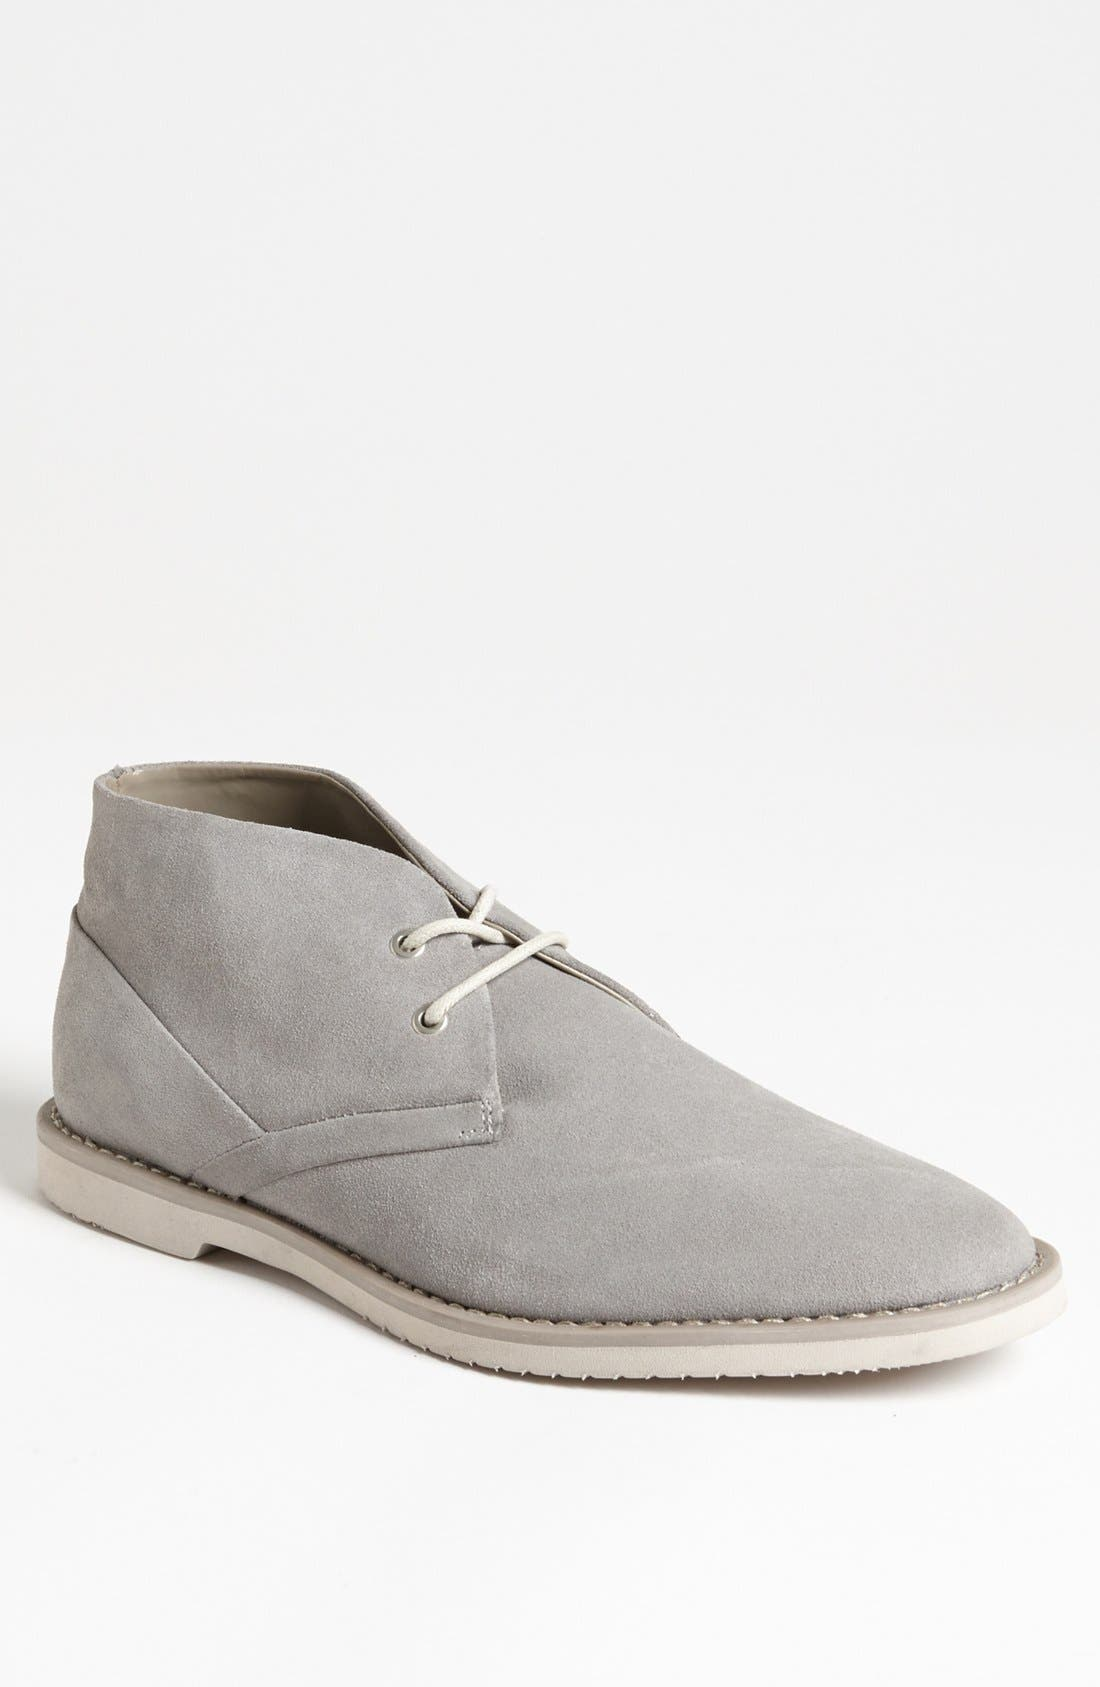 Alternate Image 1 Selected - Calvin Klein 'Firenze' Chukka Boot